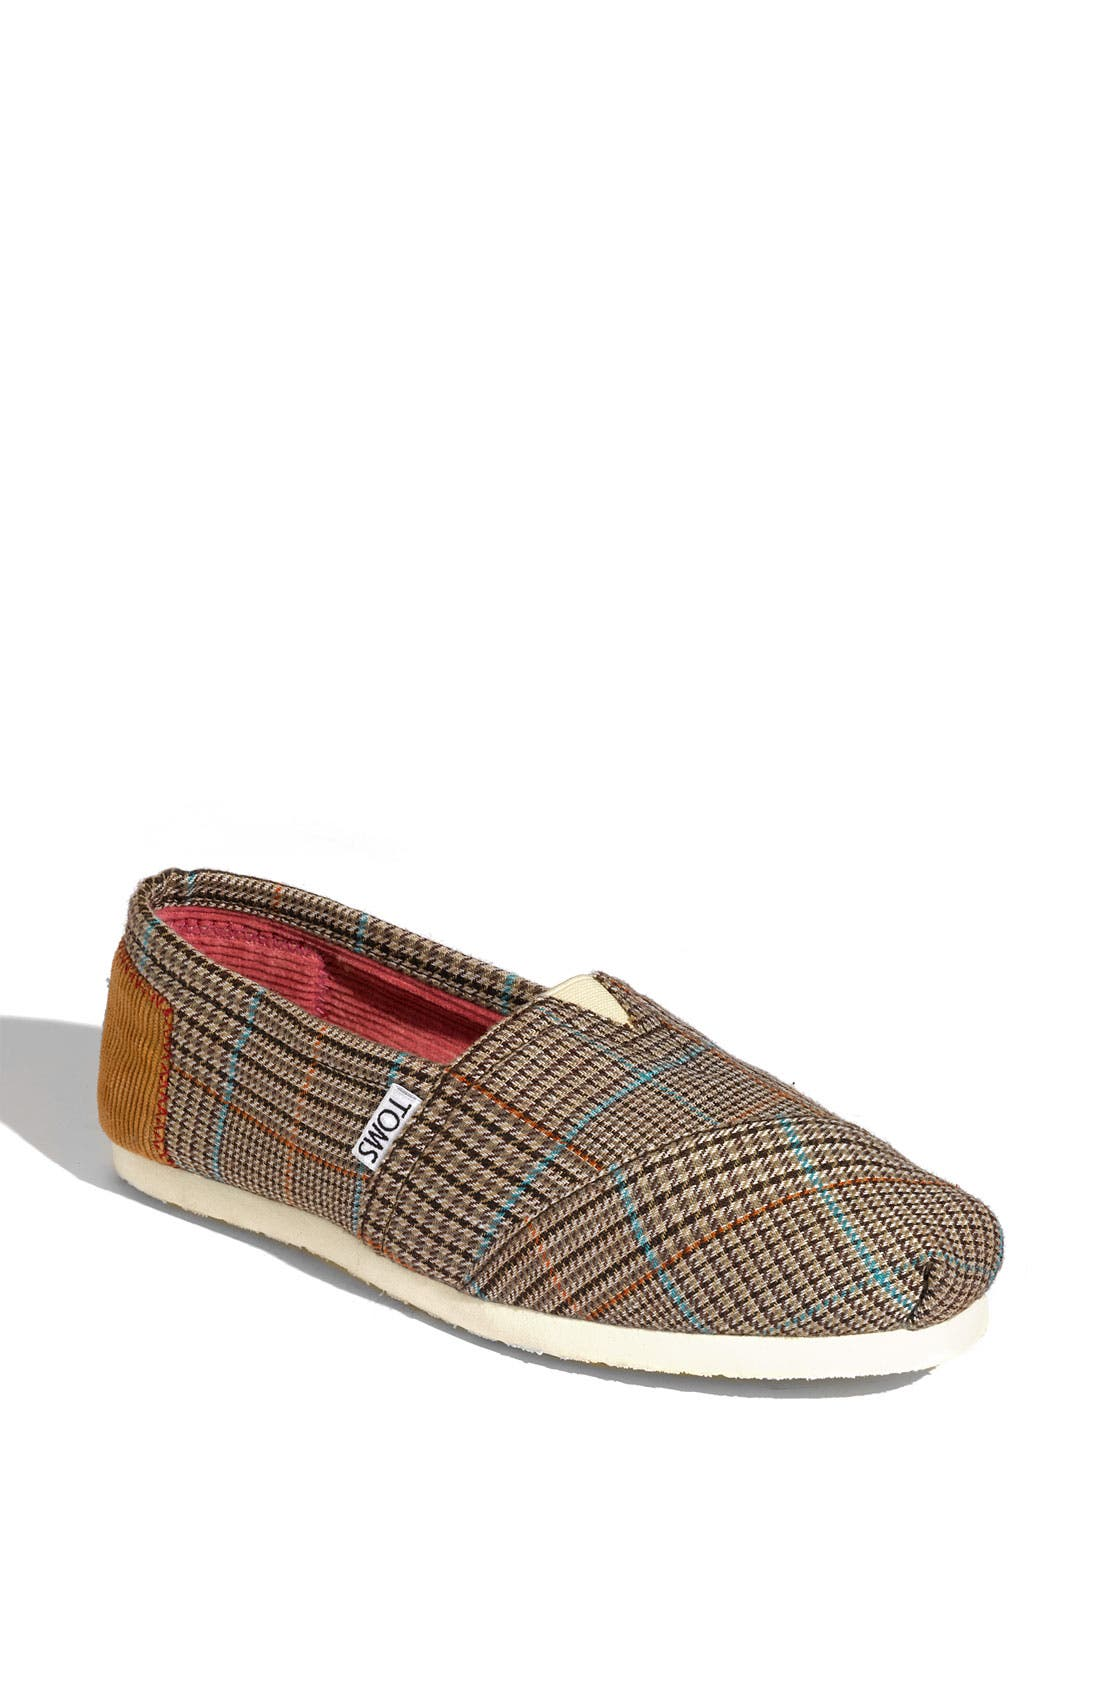 'Classic - Academy Plaid' Slip-On,                             Main thumbnail 1, color,                             200